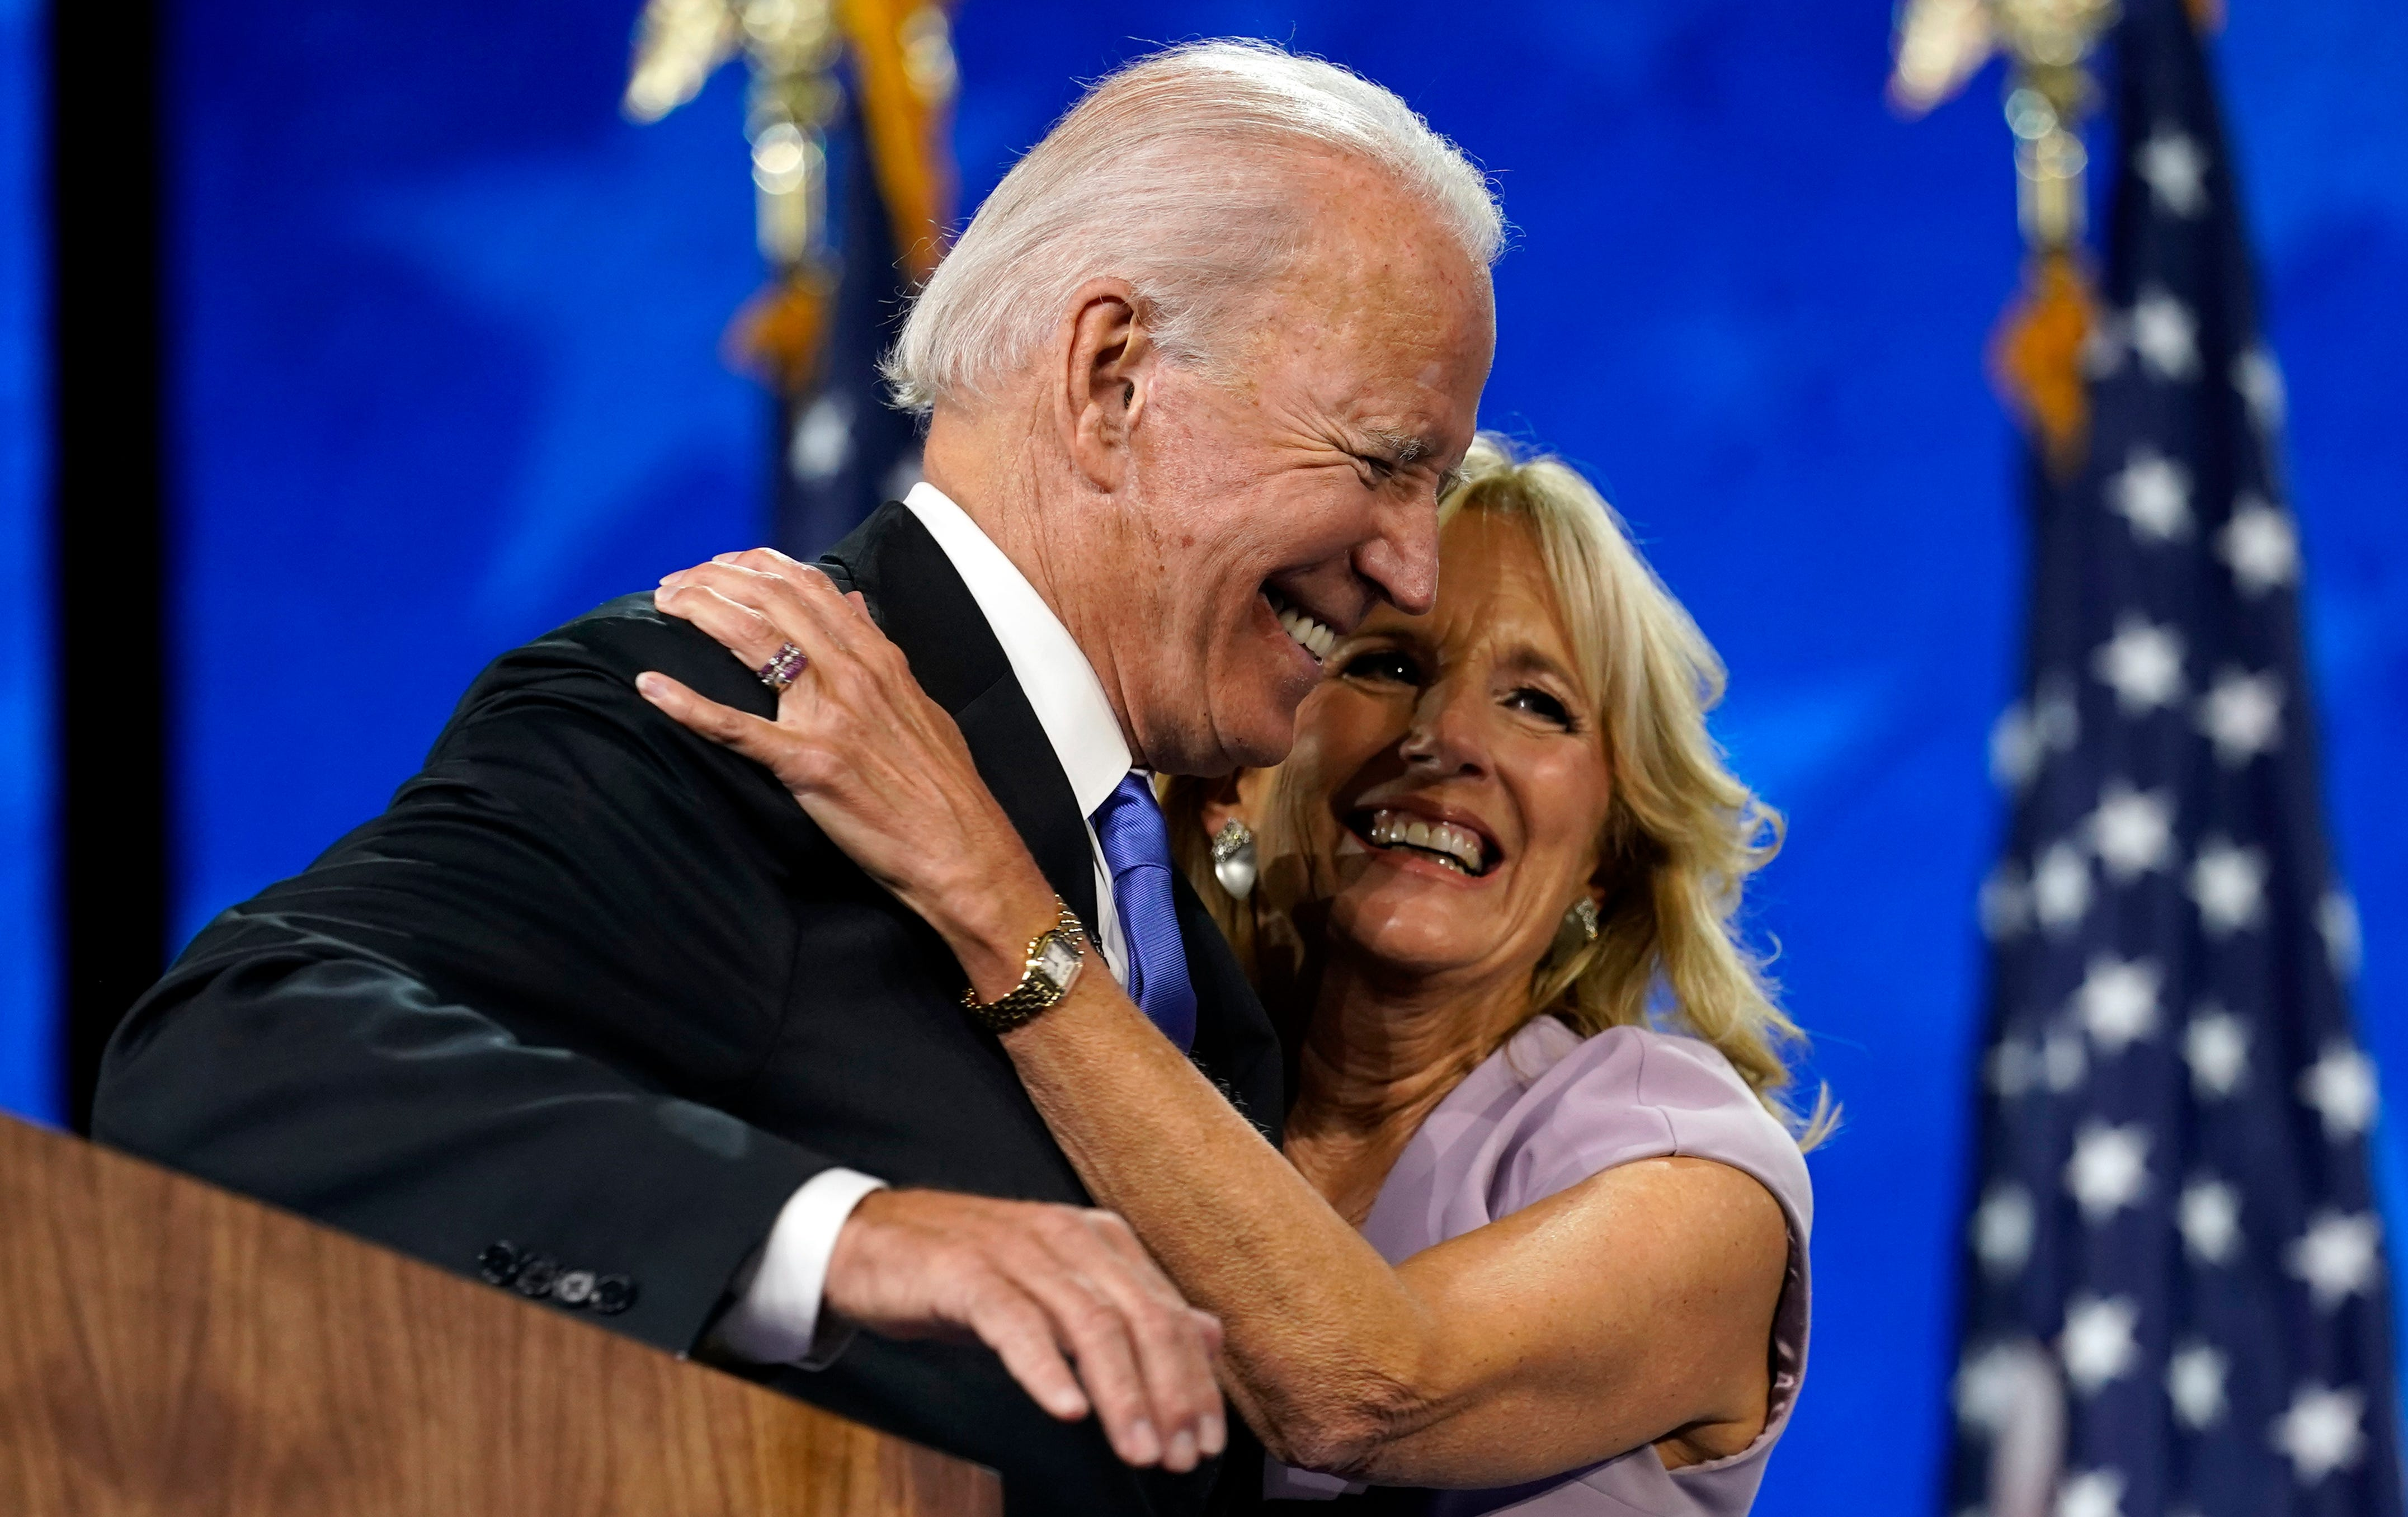 Democratic presidential candidate former Vice President Joe Biden hugs his wife Jill Biden after his speech during the fourth day of the Democratic National Convention, Thursday, Aug. 20, 2020, at the Chase Center in Wilmington, Del.